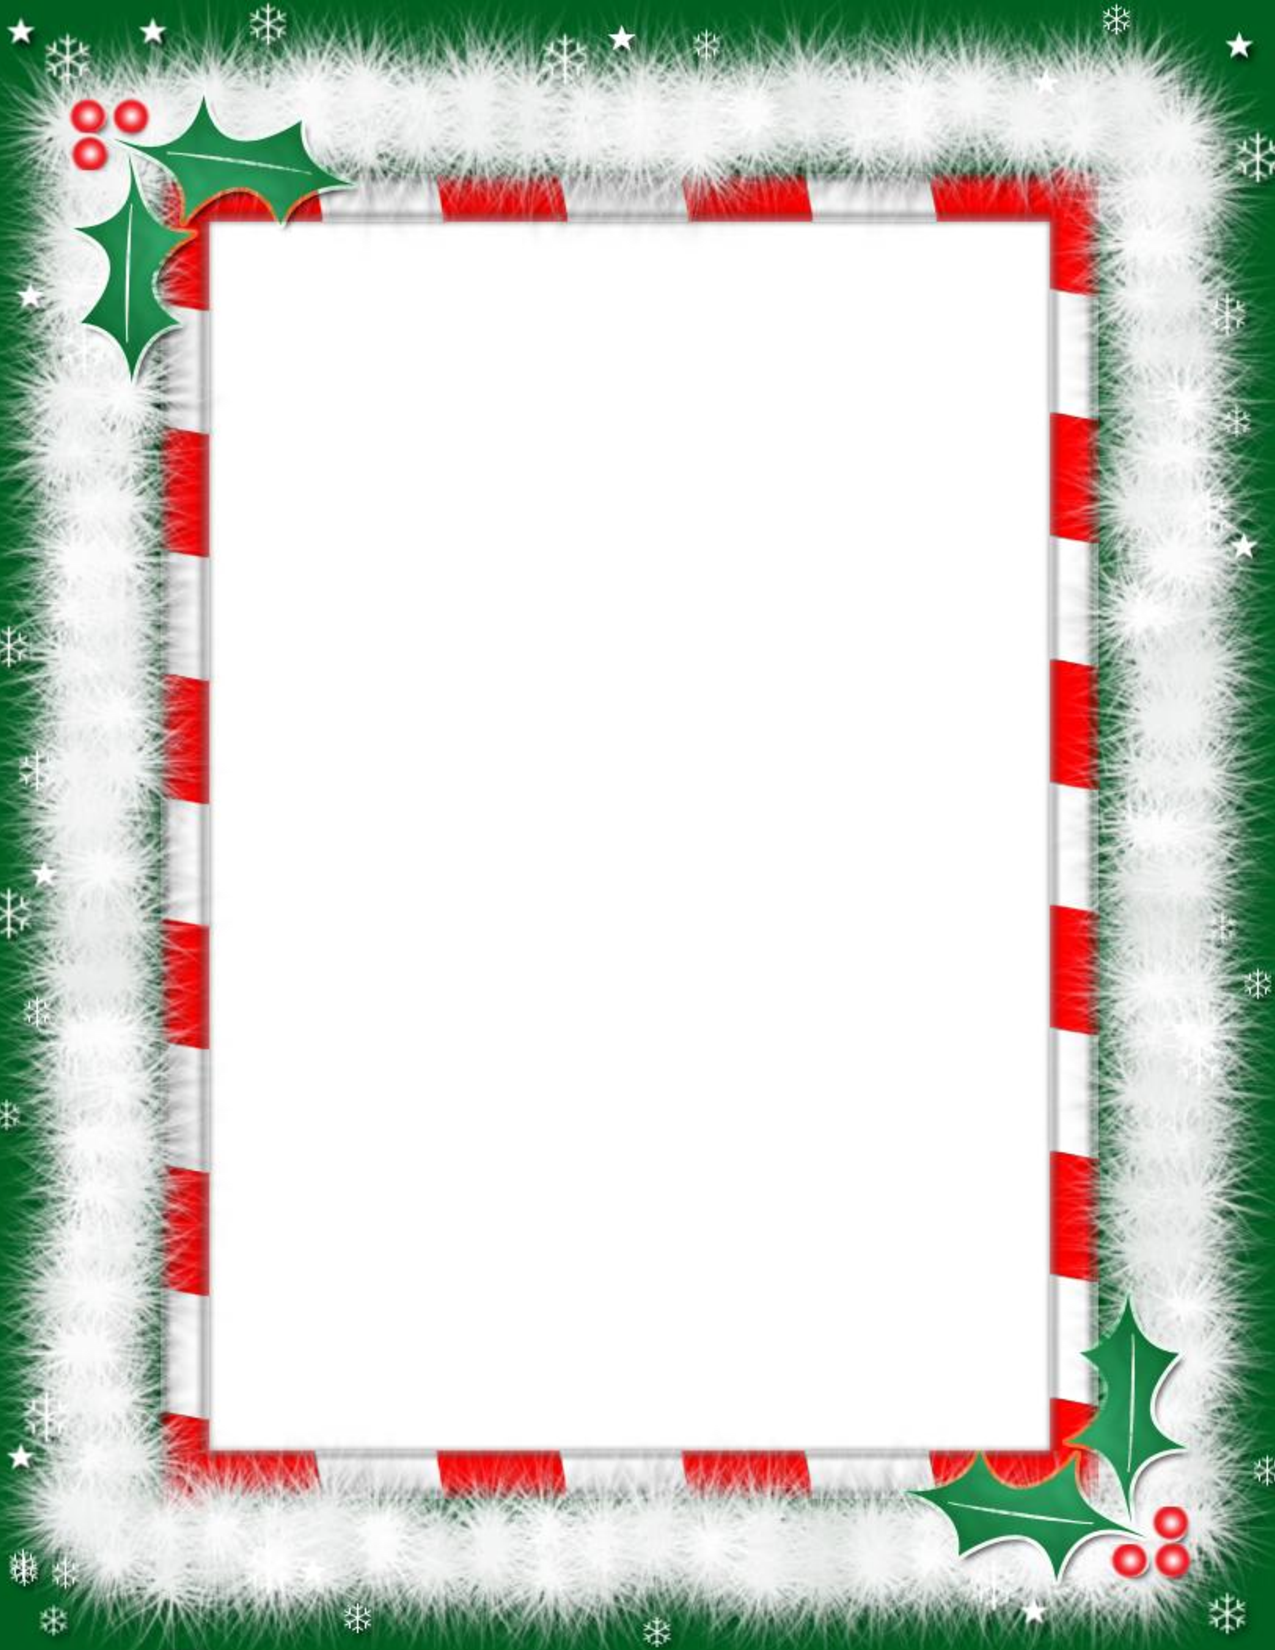 Free Christmas Letter Templates Microsoft Word   Google Search More  Christmas Letter Templates